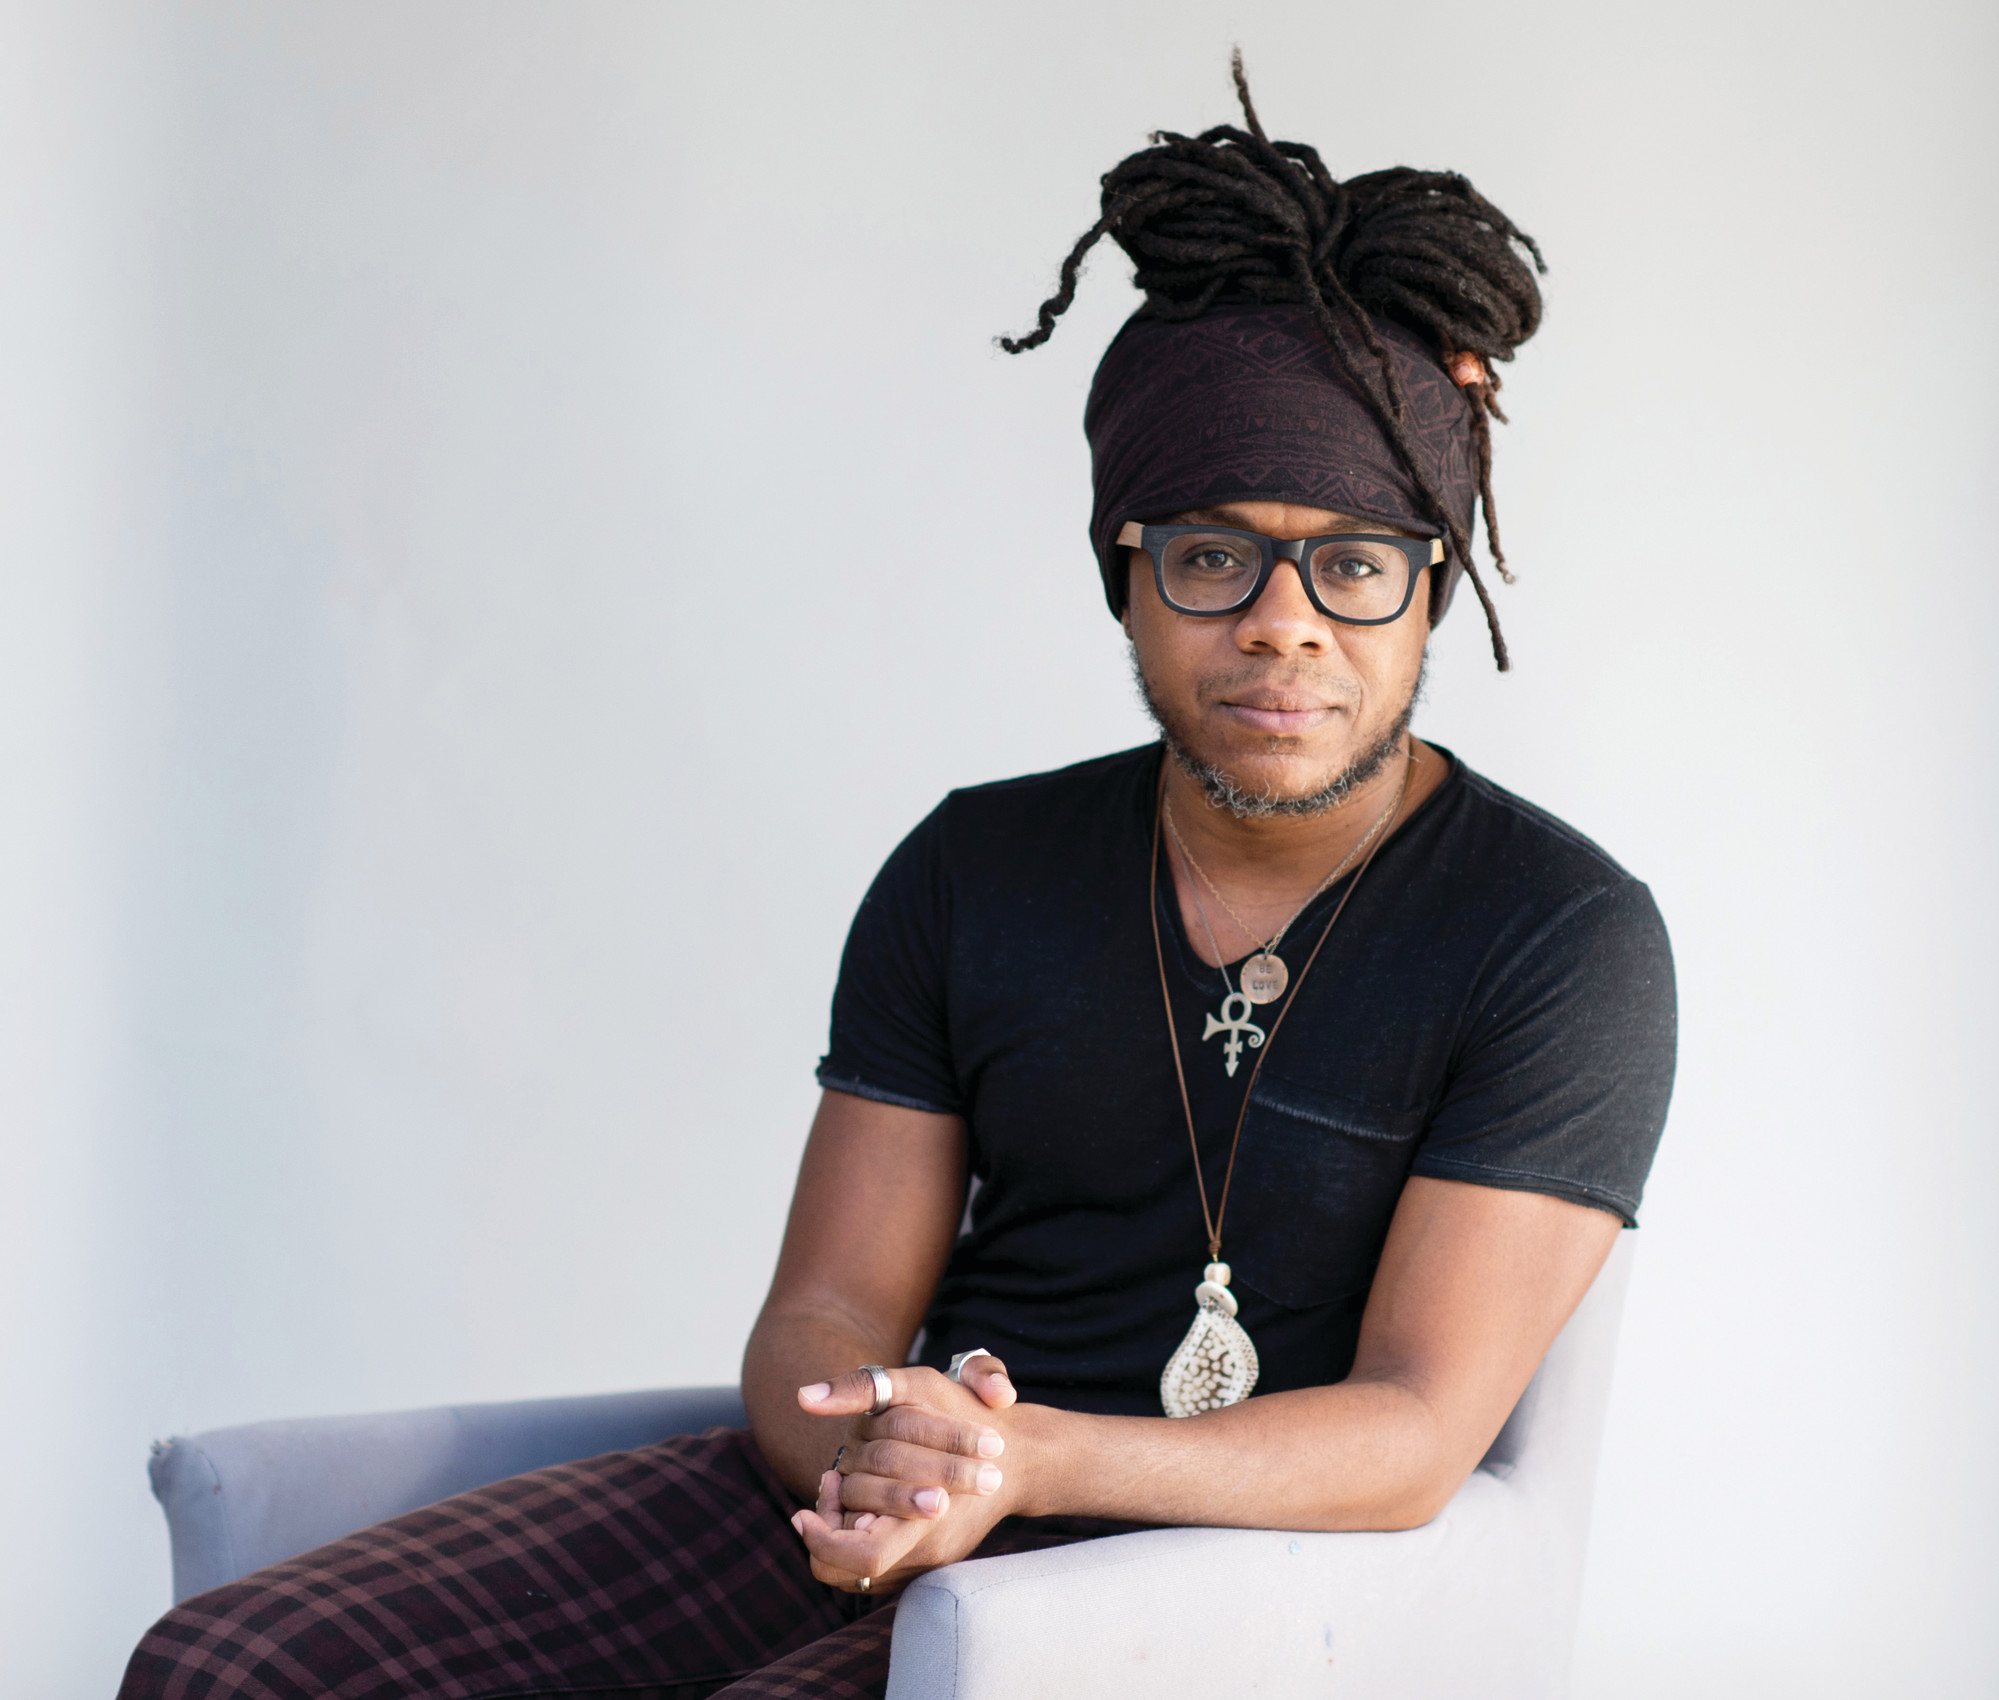 Charleston Poet Laureate Marcus Amaker will give a spoken word performance at the Love, Respect, Unity Arts Festival on Sunday at Patriot Hall.